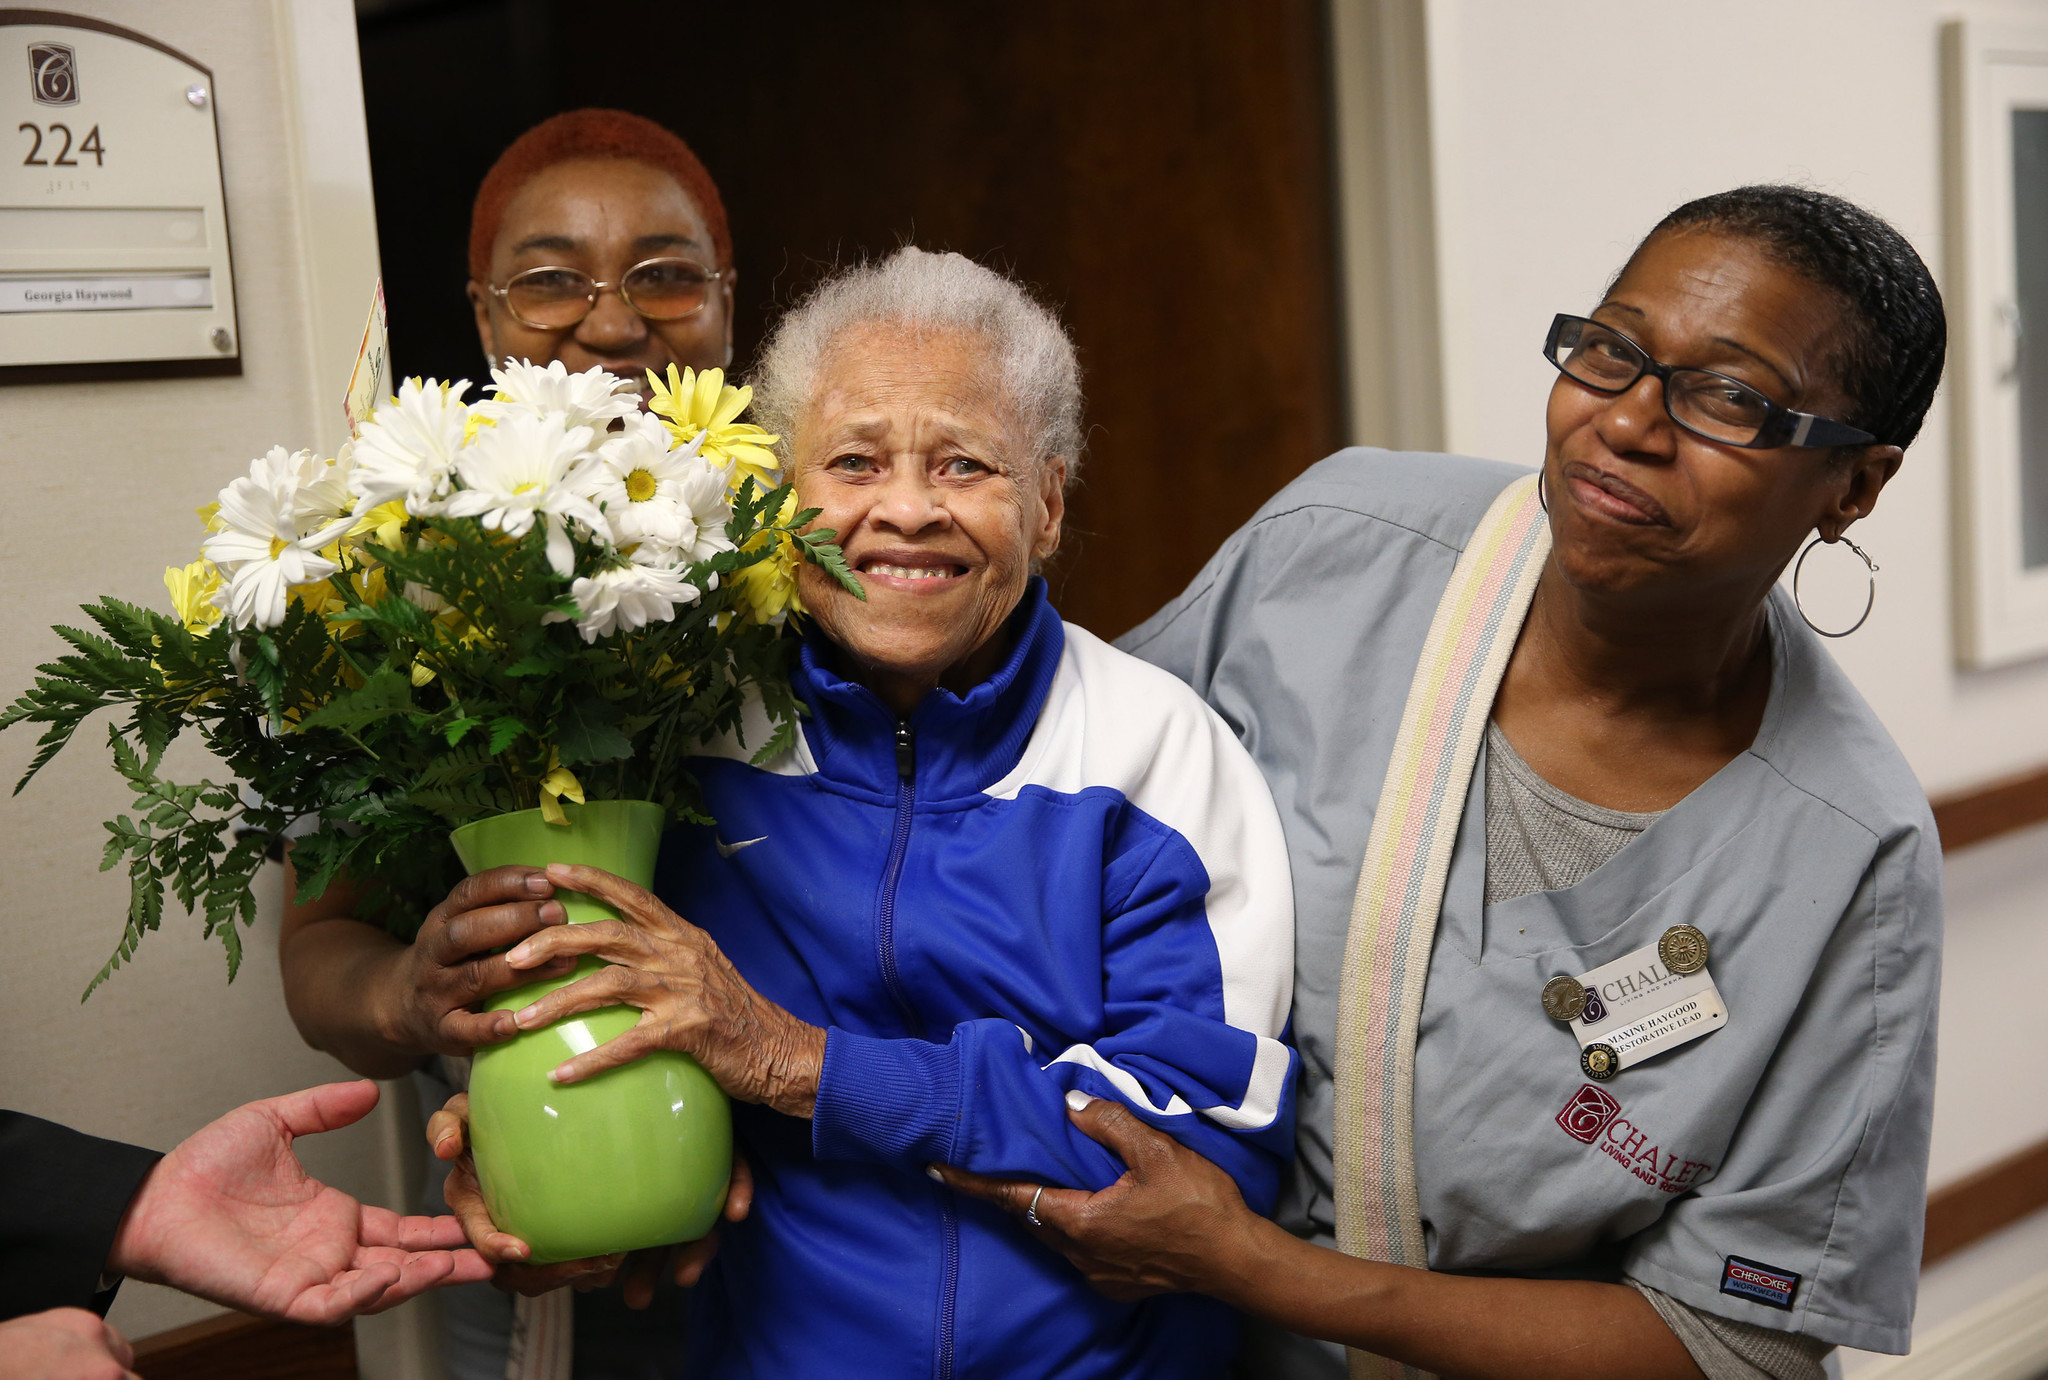 Random Acts of Flowers brings smiles to Chicago hospitals senior centers O